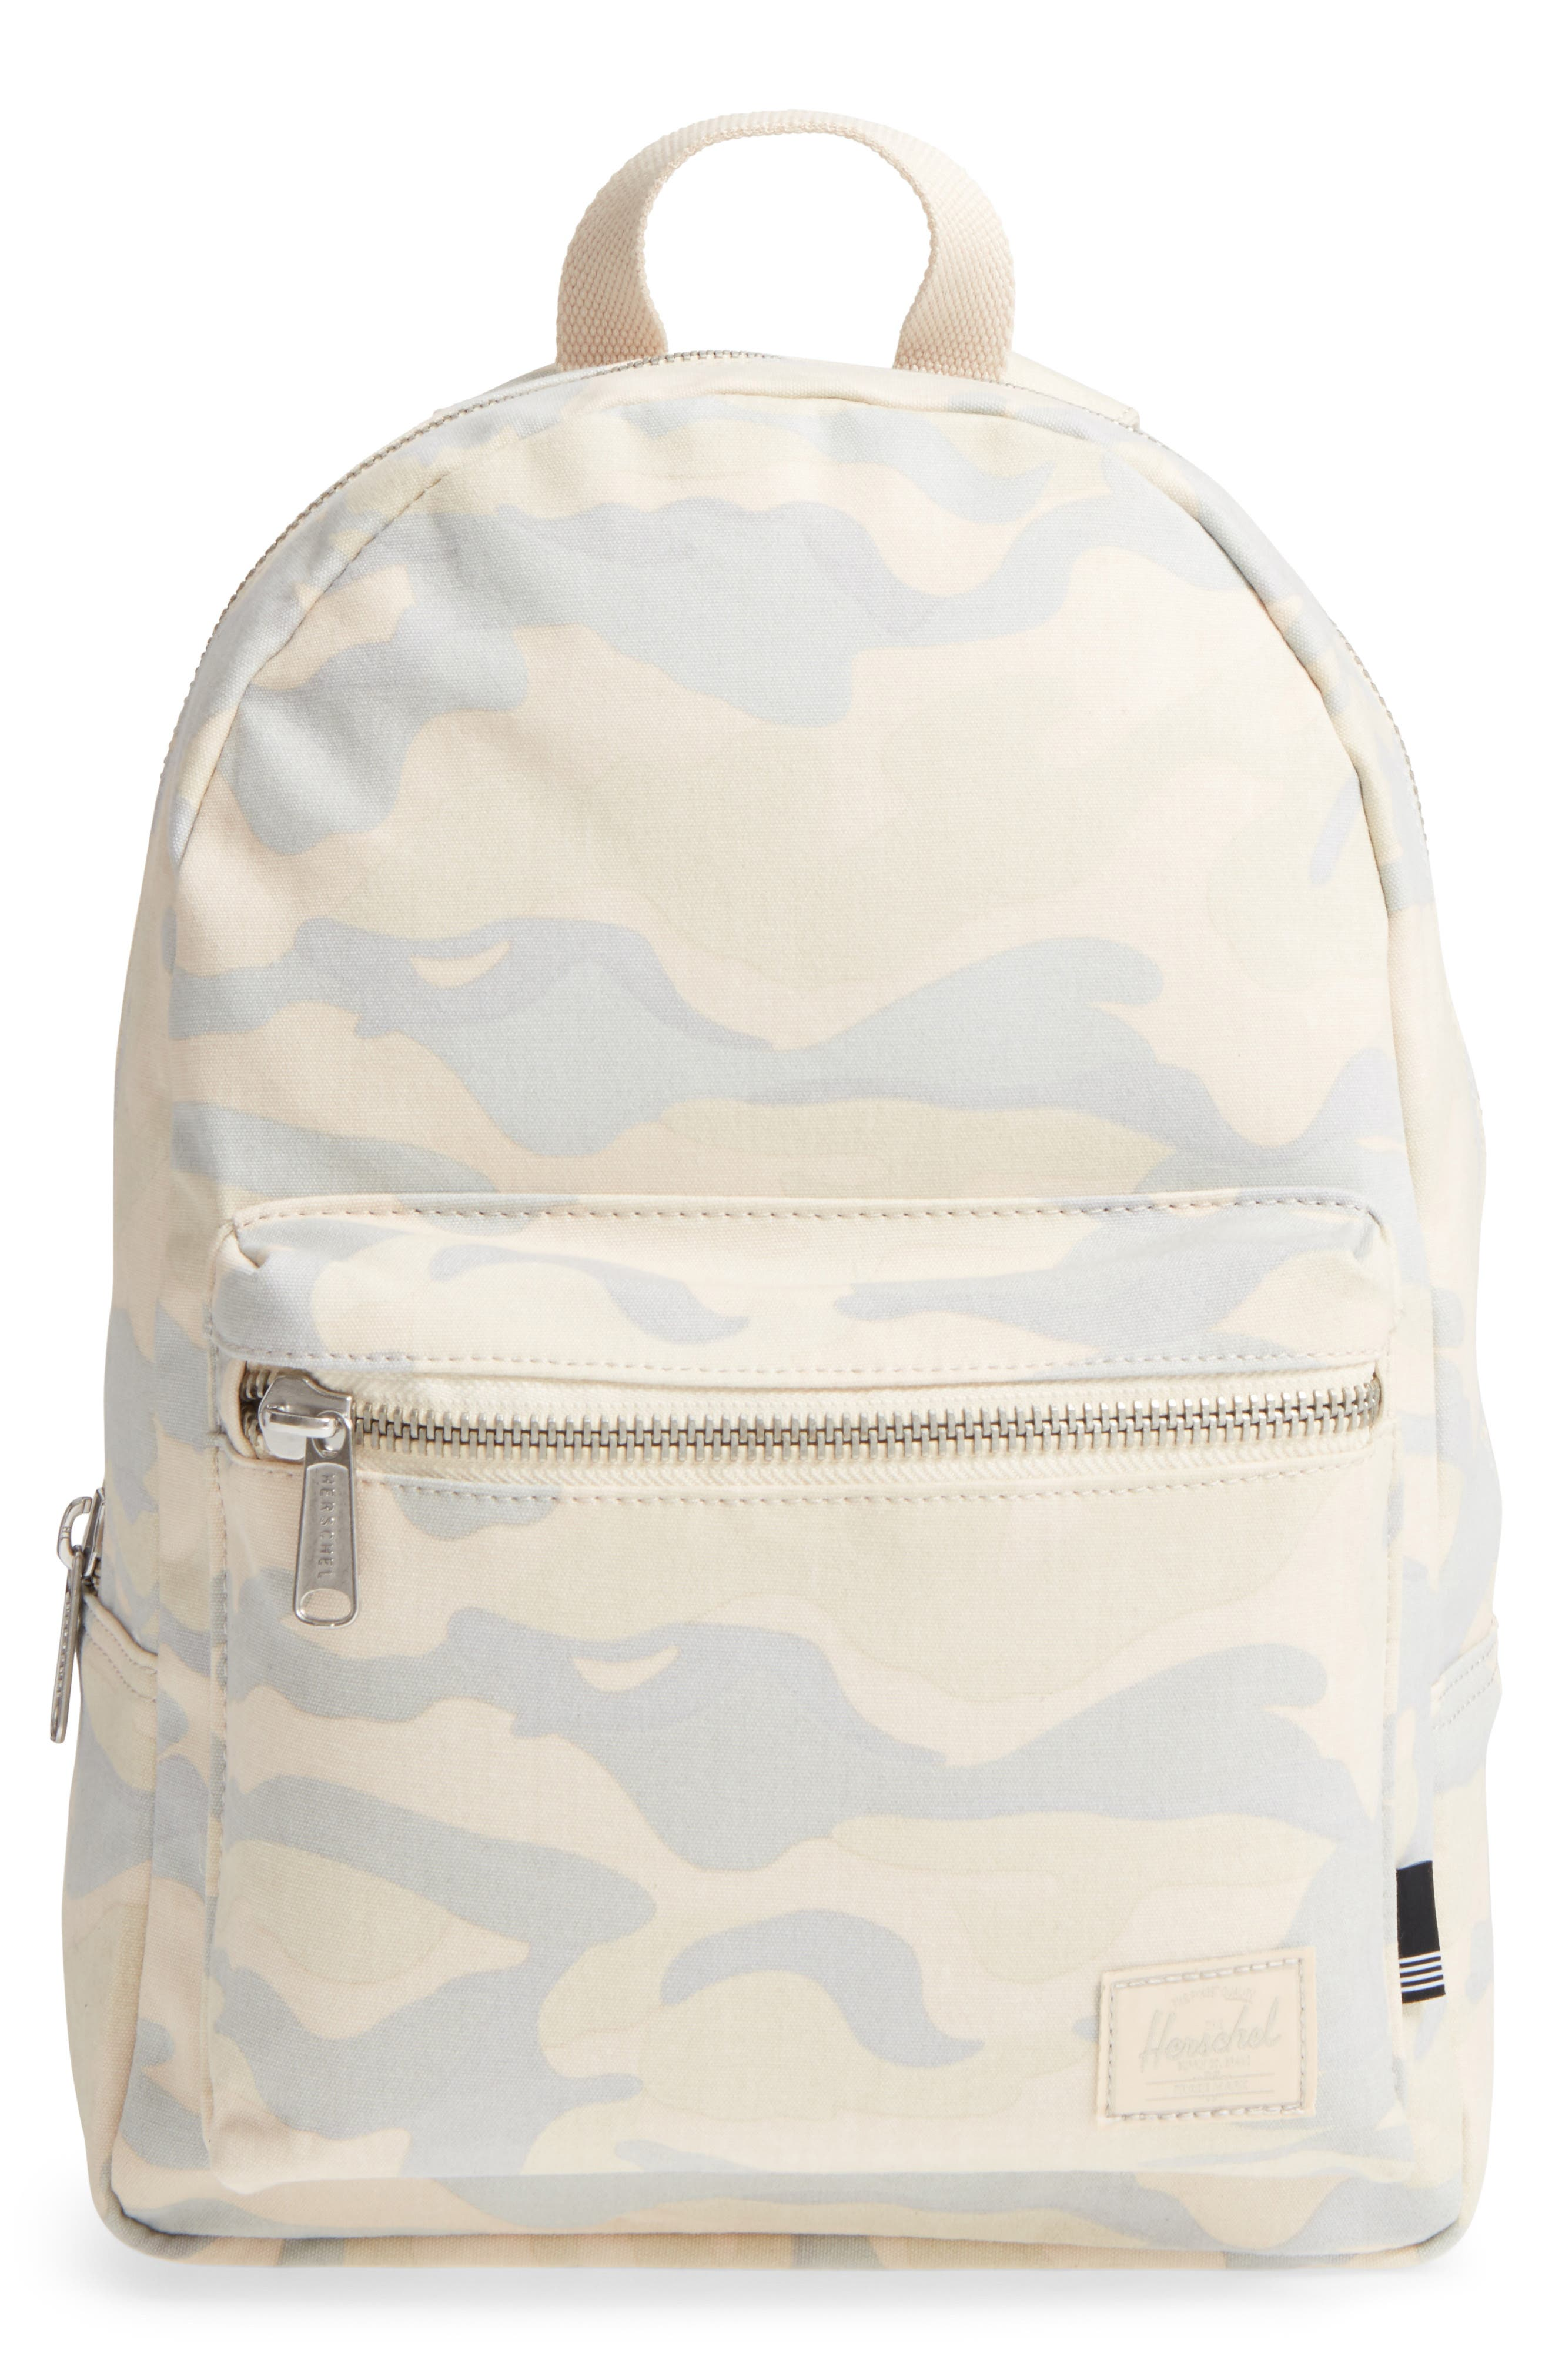 Alternate Image 1 Selected - Herschel Supply Co. X-Small Grove Backpack